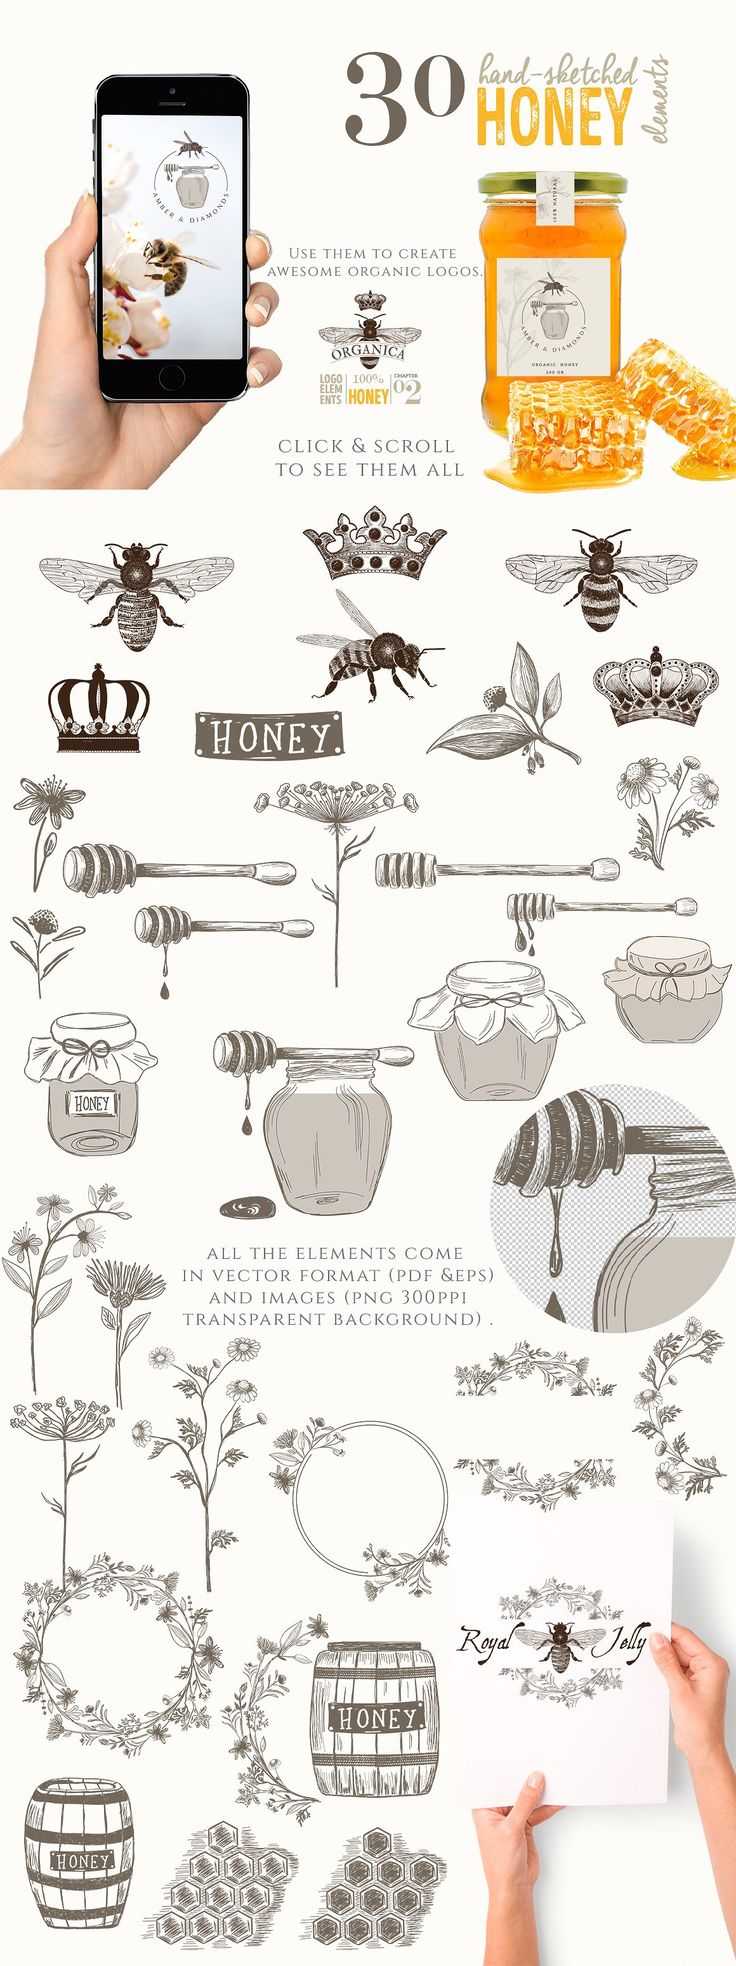 ORGANIC LOGO ELEMENTS – HONEY by Friendly Label on @creativemarket logo, organic, honey, bee, hand-sketched, hand-drawn, jar, crown, wood barrel, honey dipper, chamomile, herbals, plants, illustrations, graphics